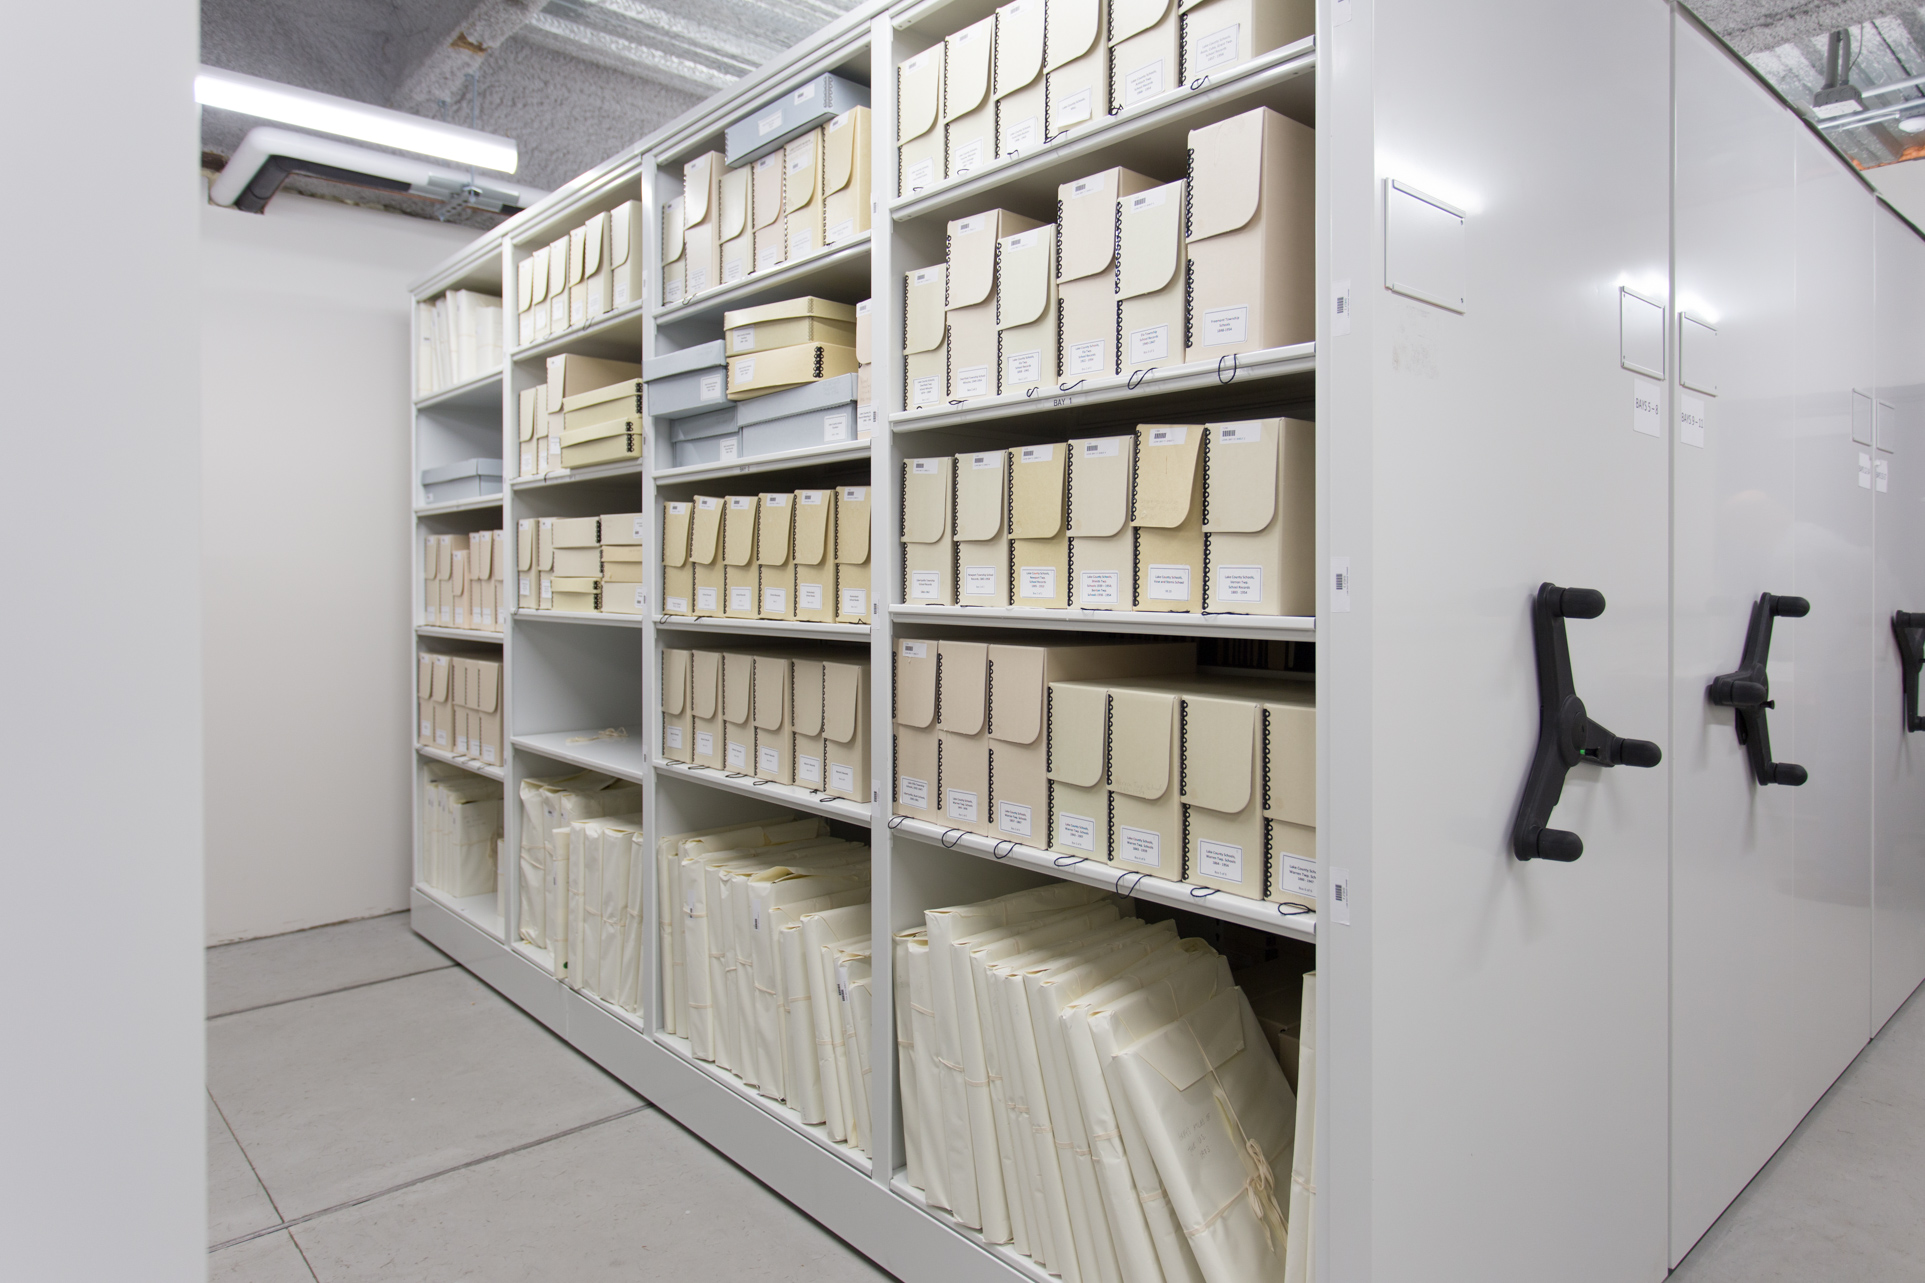 Archives stored on mobile mechanical assist at the Dunn Museum